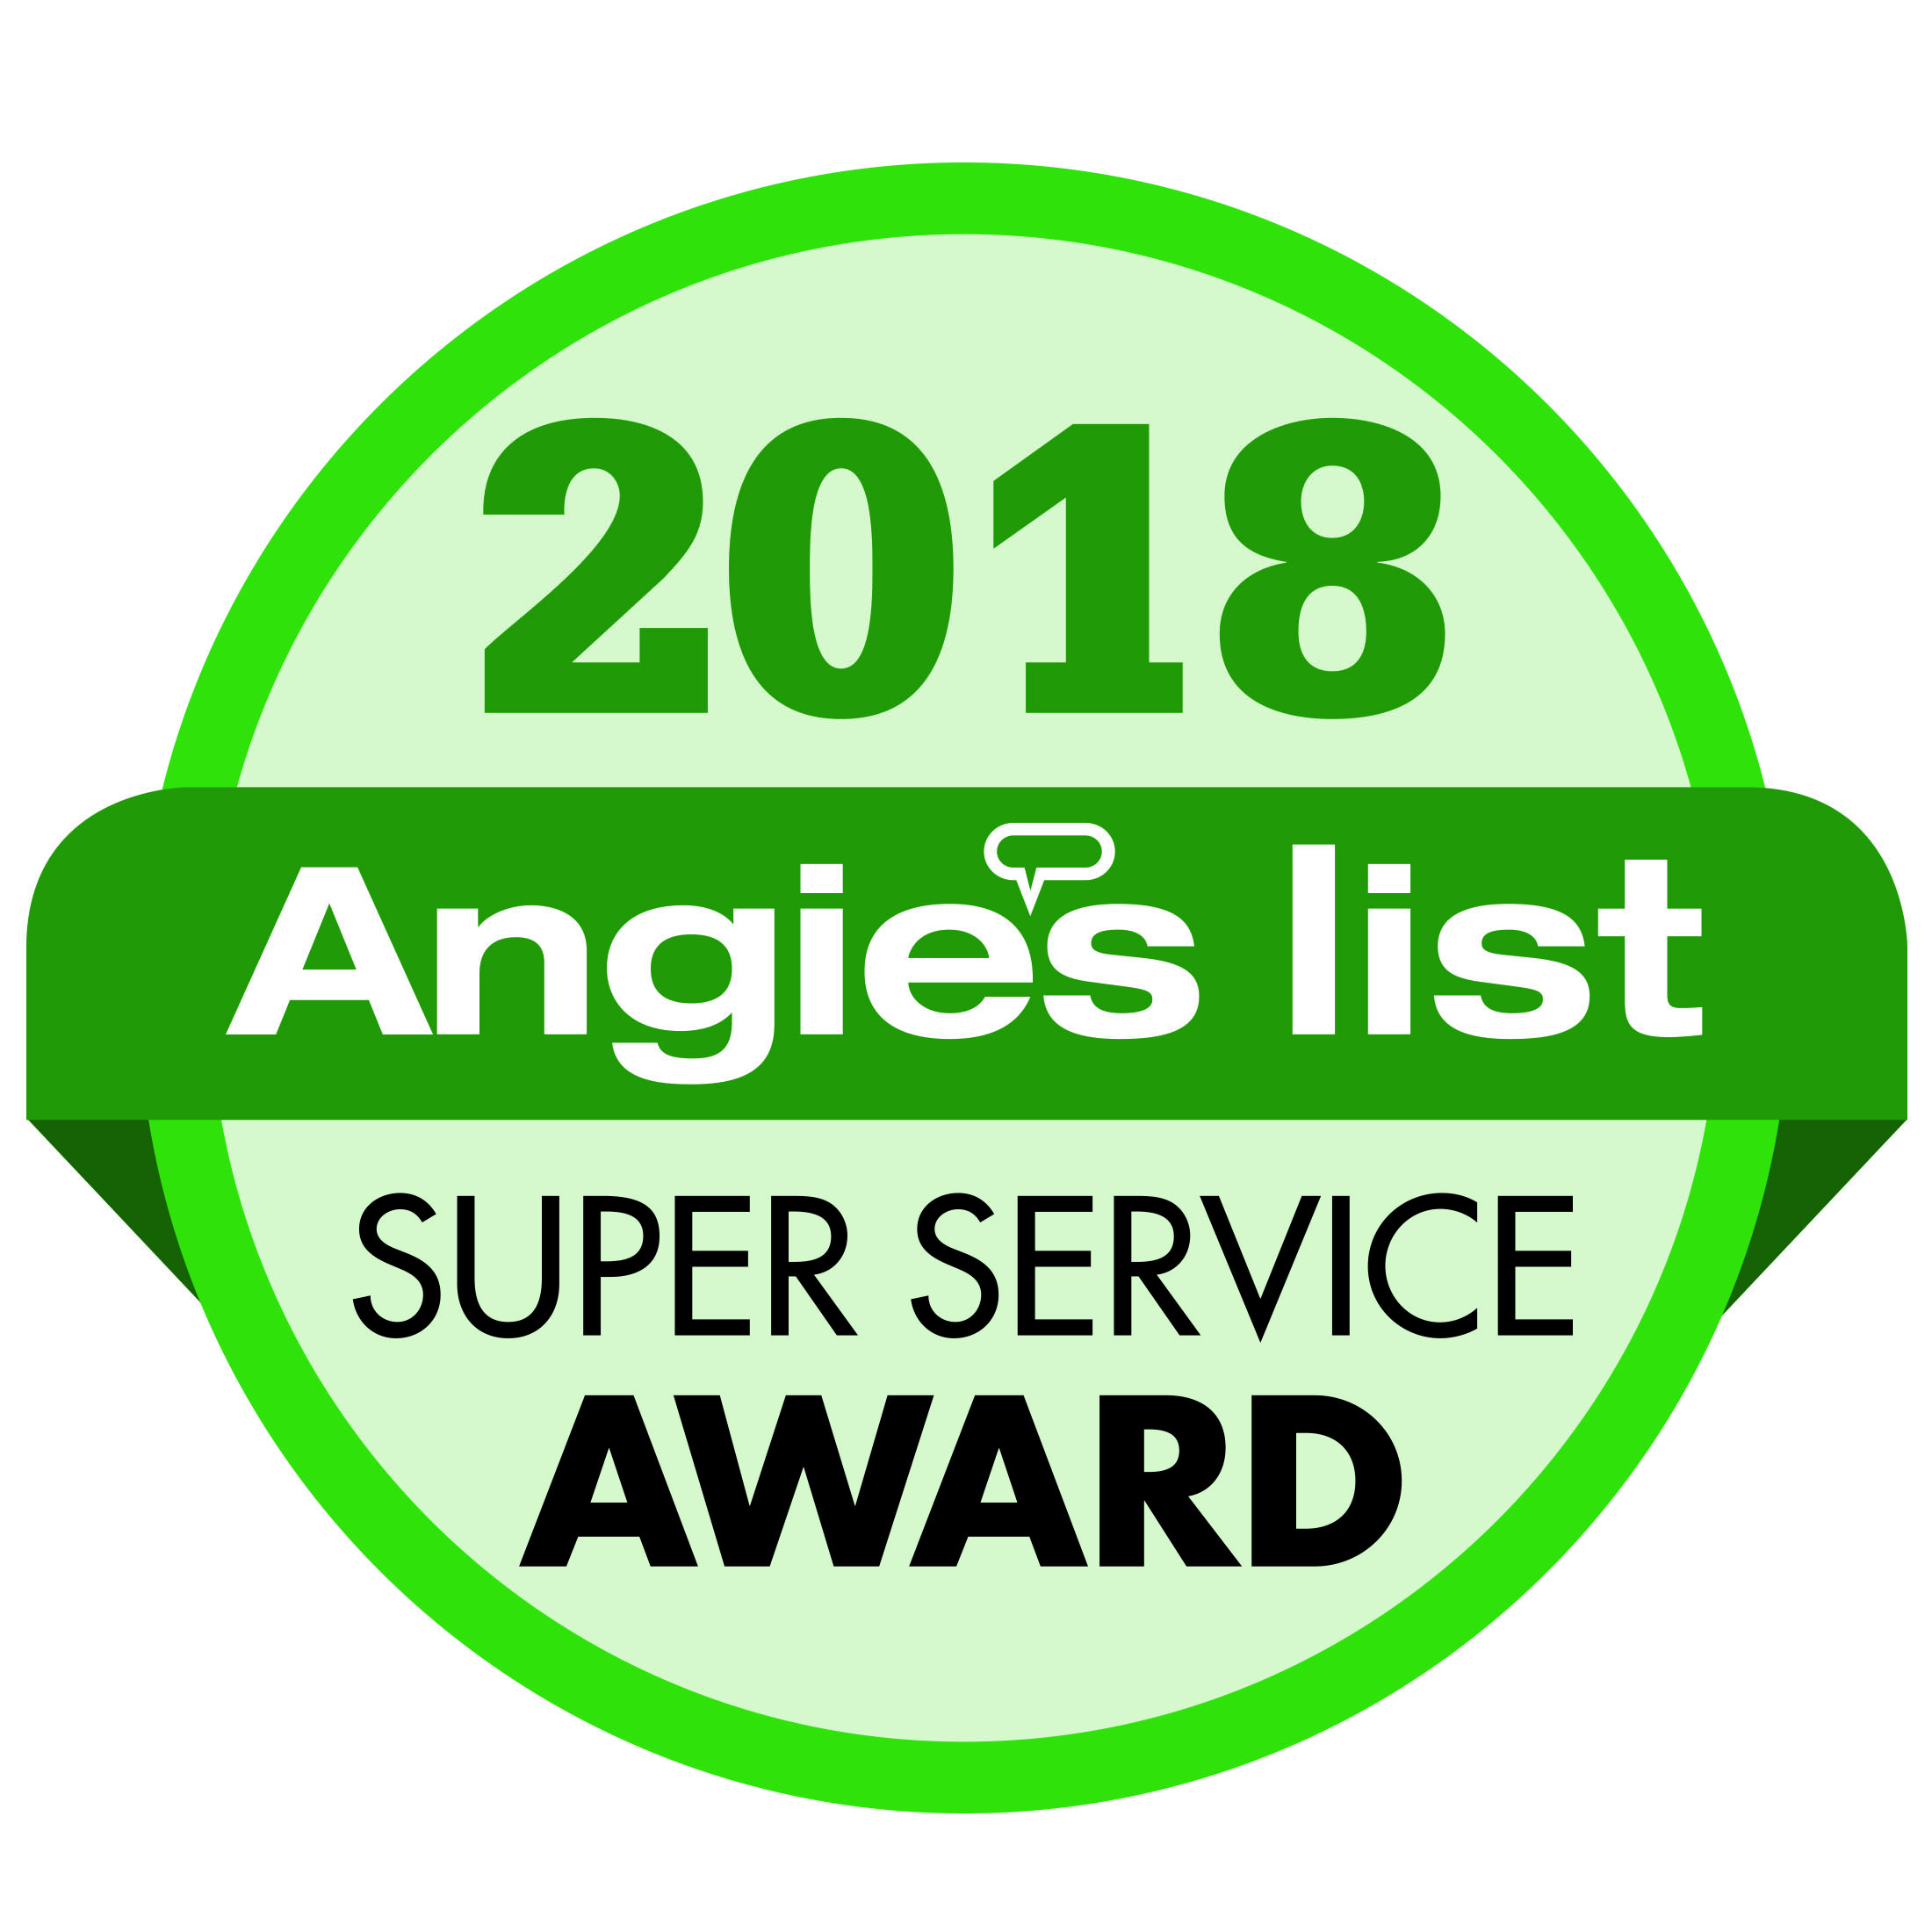 2018 Angie's super service